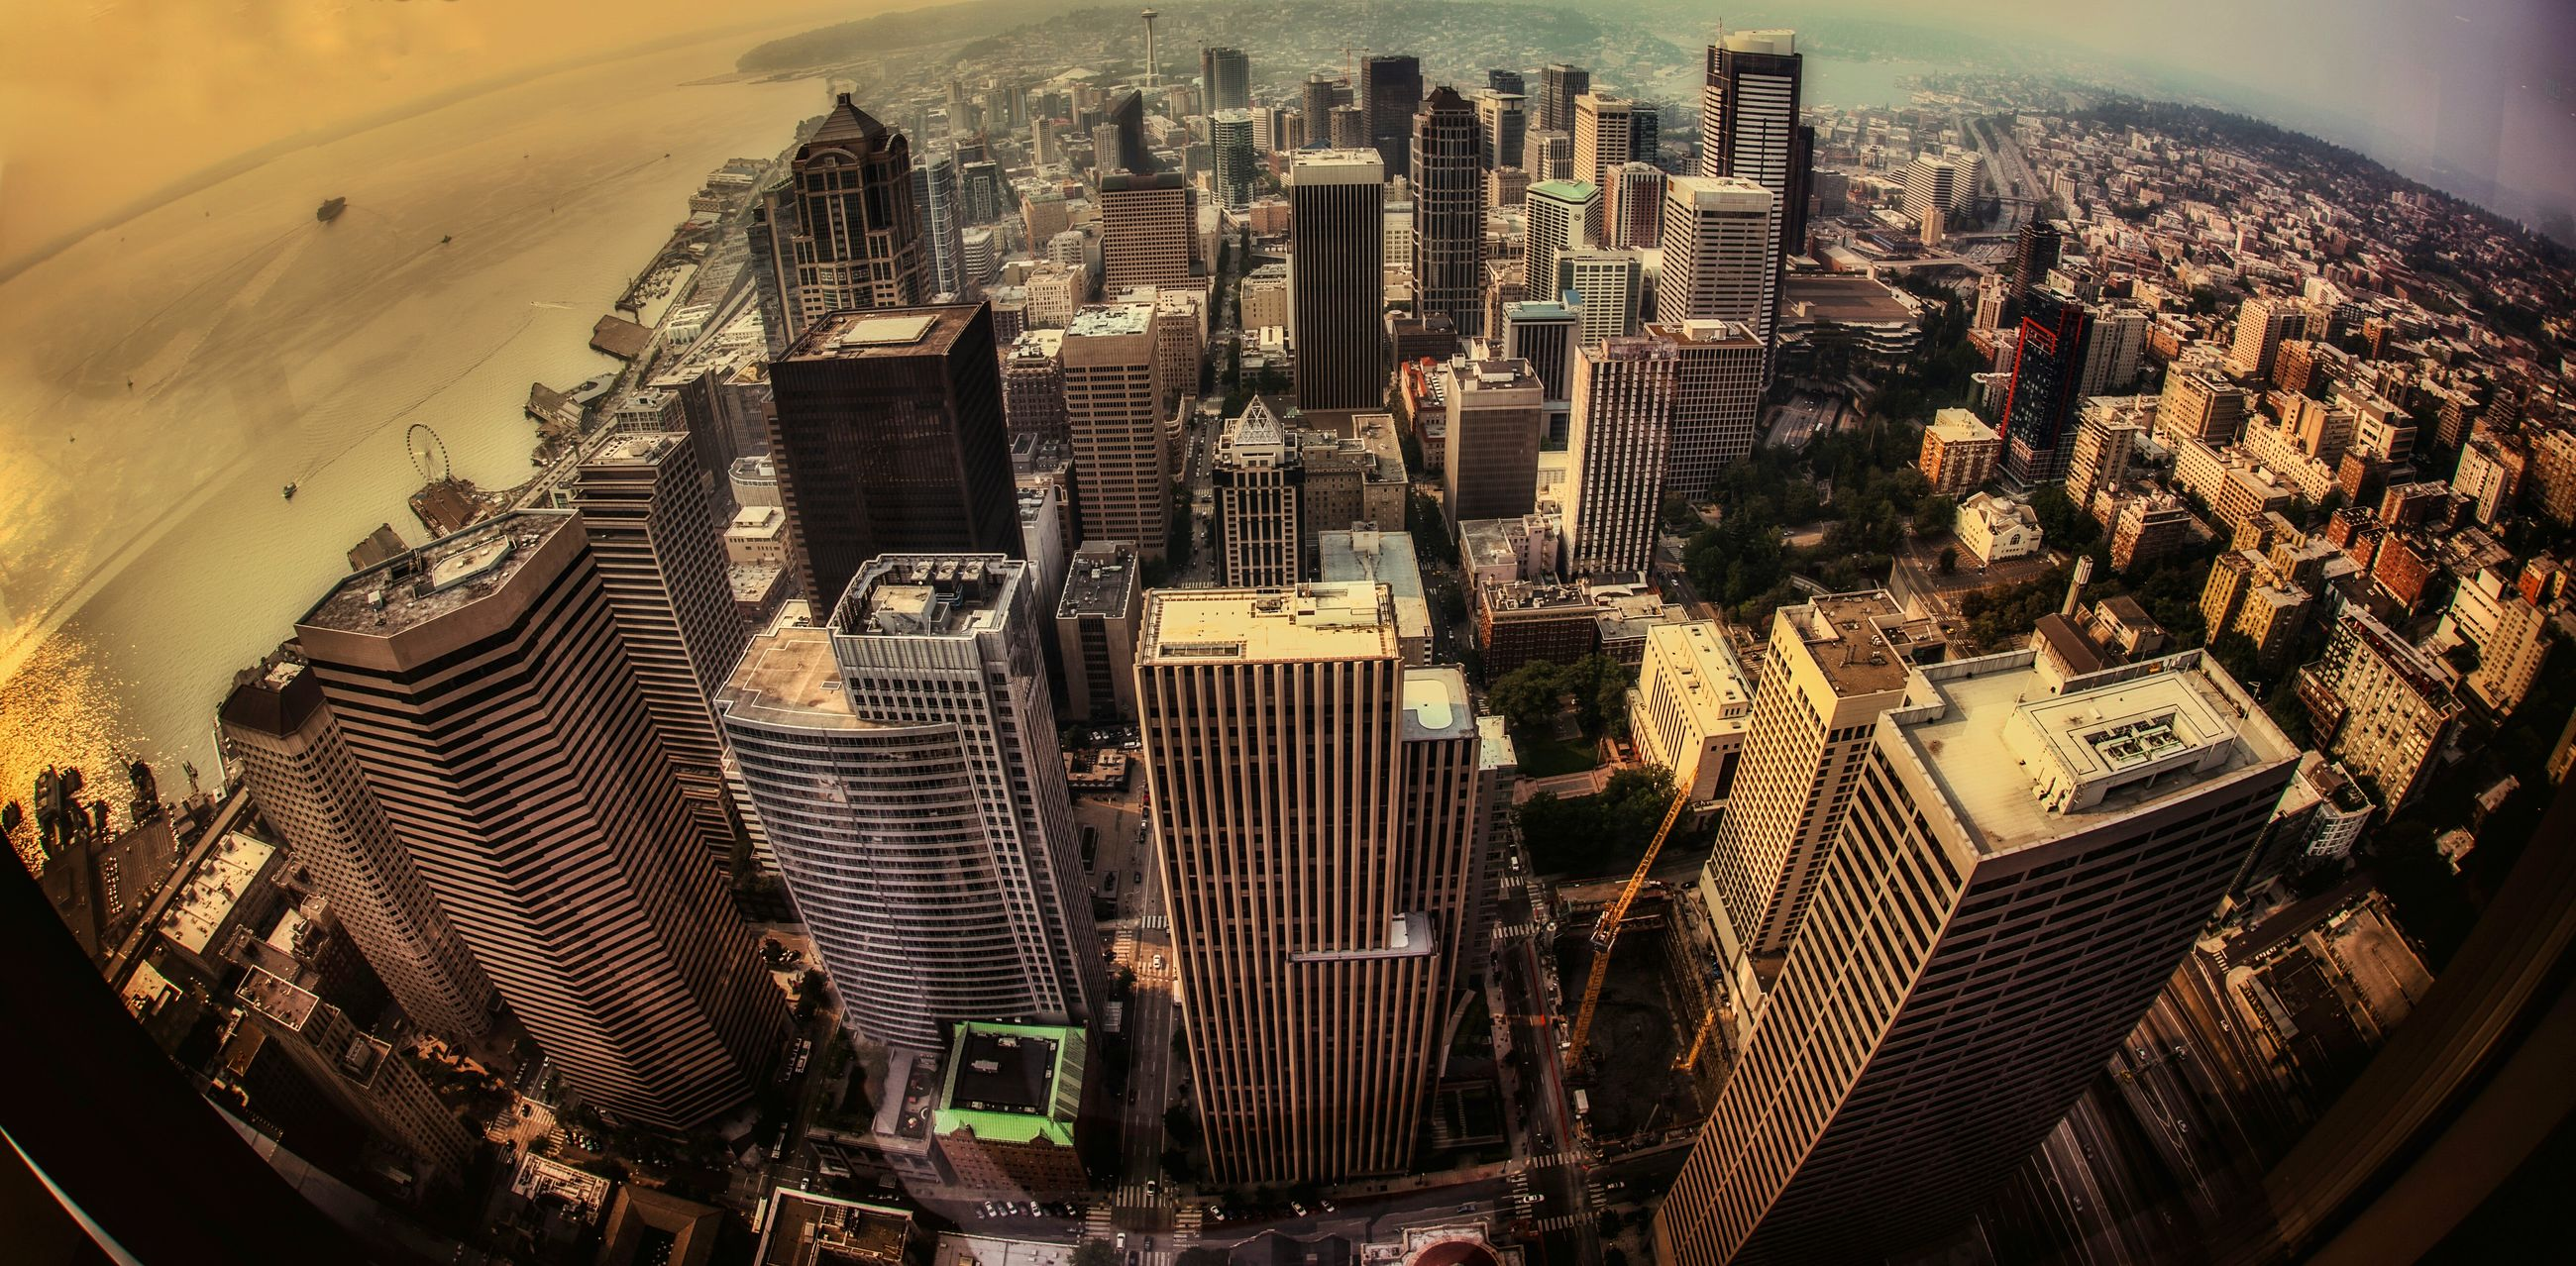 high angle view, indoors, city, abundance, pattern, cityscape, building exterior, architecture, metal, built structure, no people, large group of objects, close-up, skyscraper, day, sunlight, modern, focus on foreground, repetition